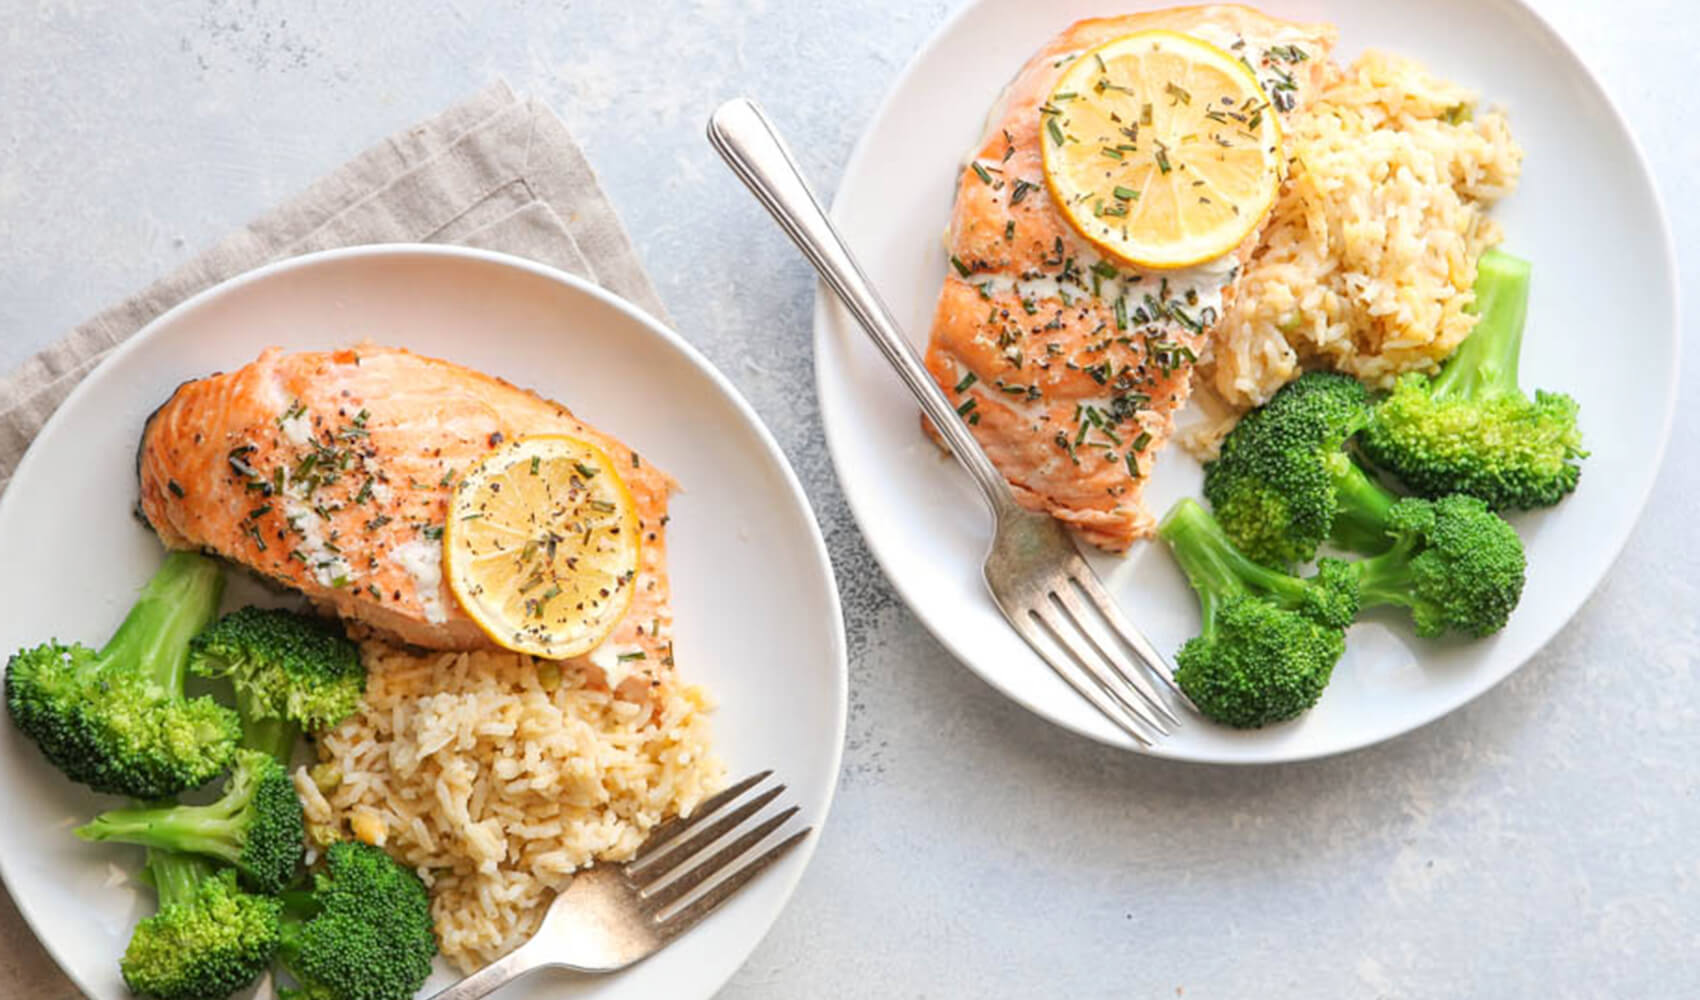 Simplest Lemon-Herb Roasted Salmon